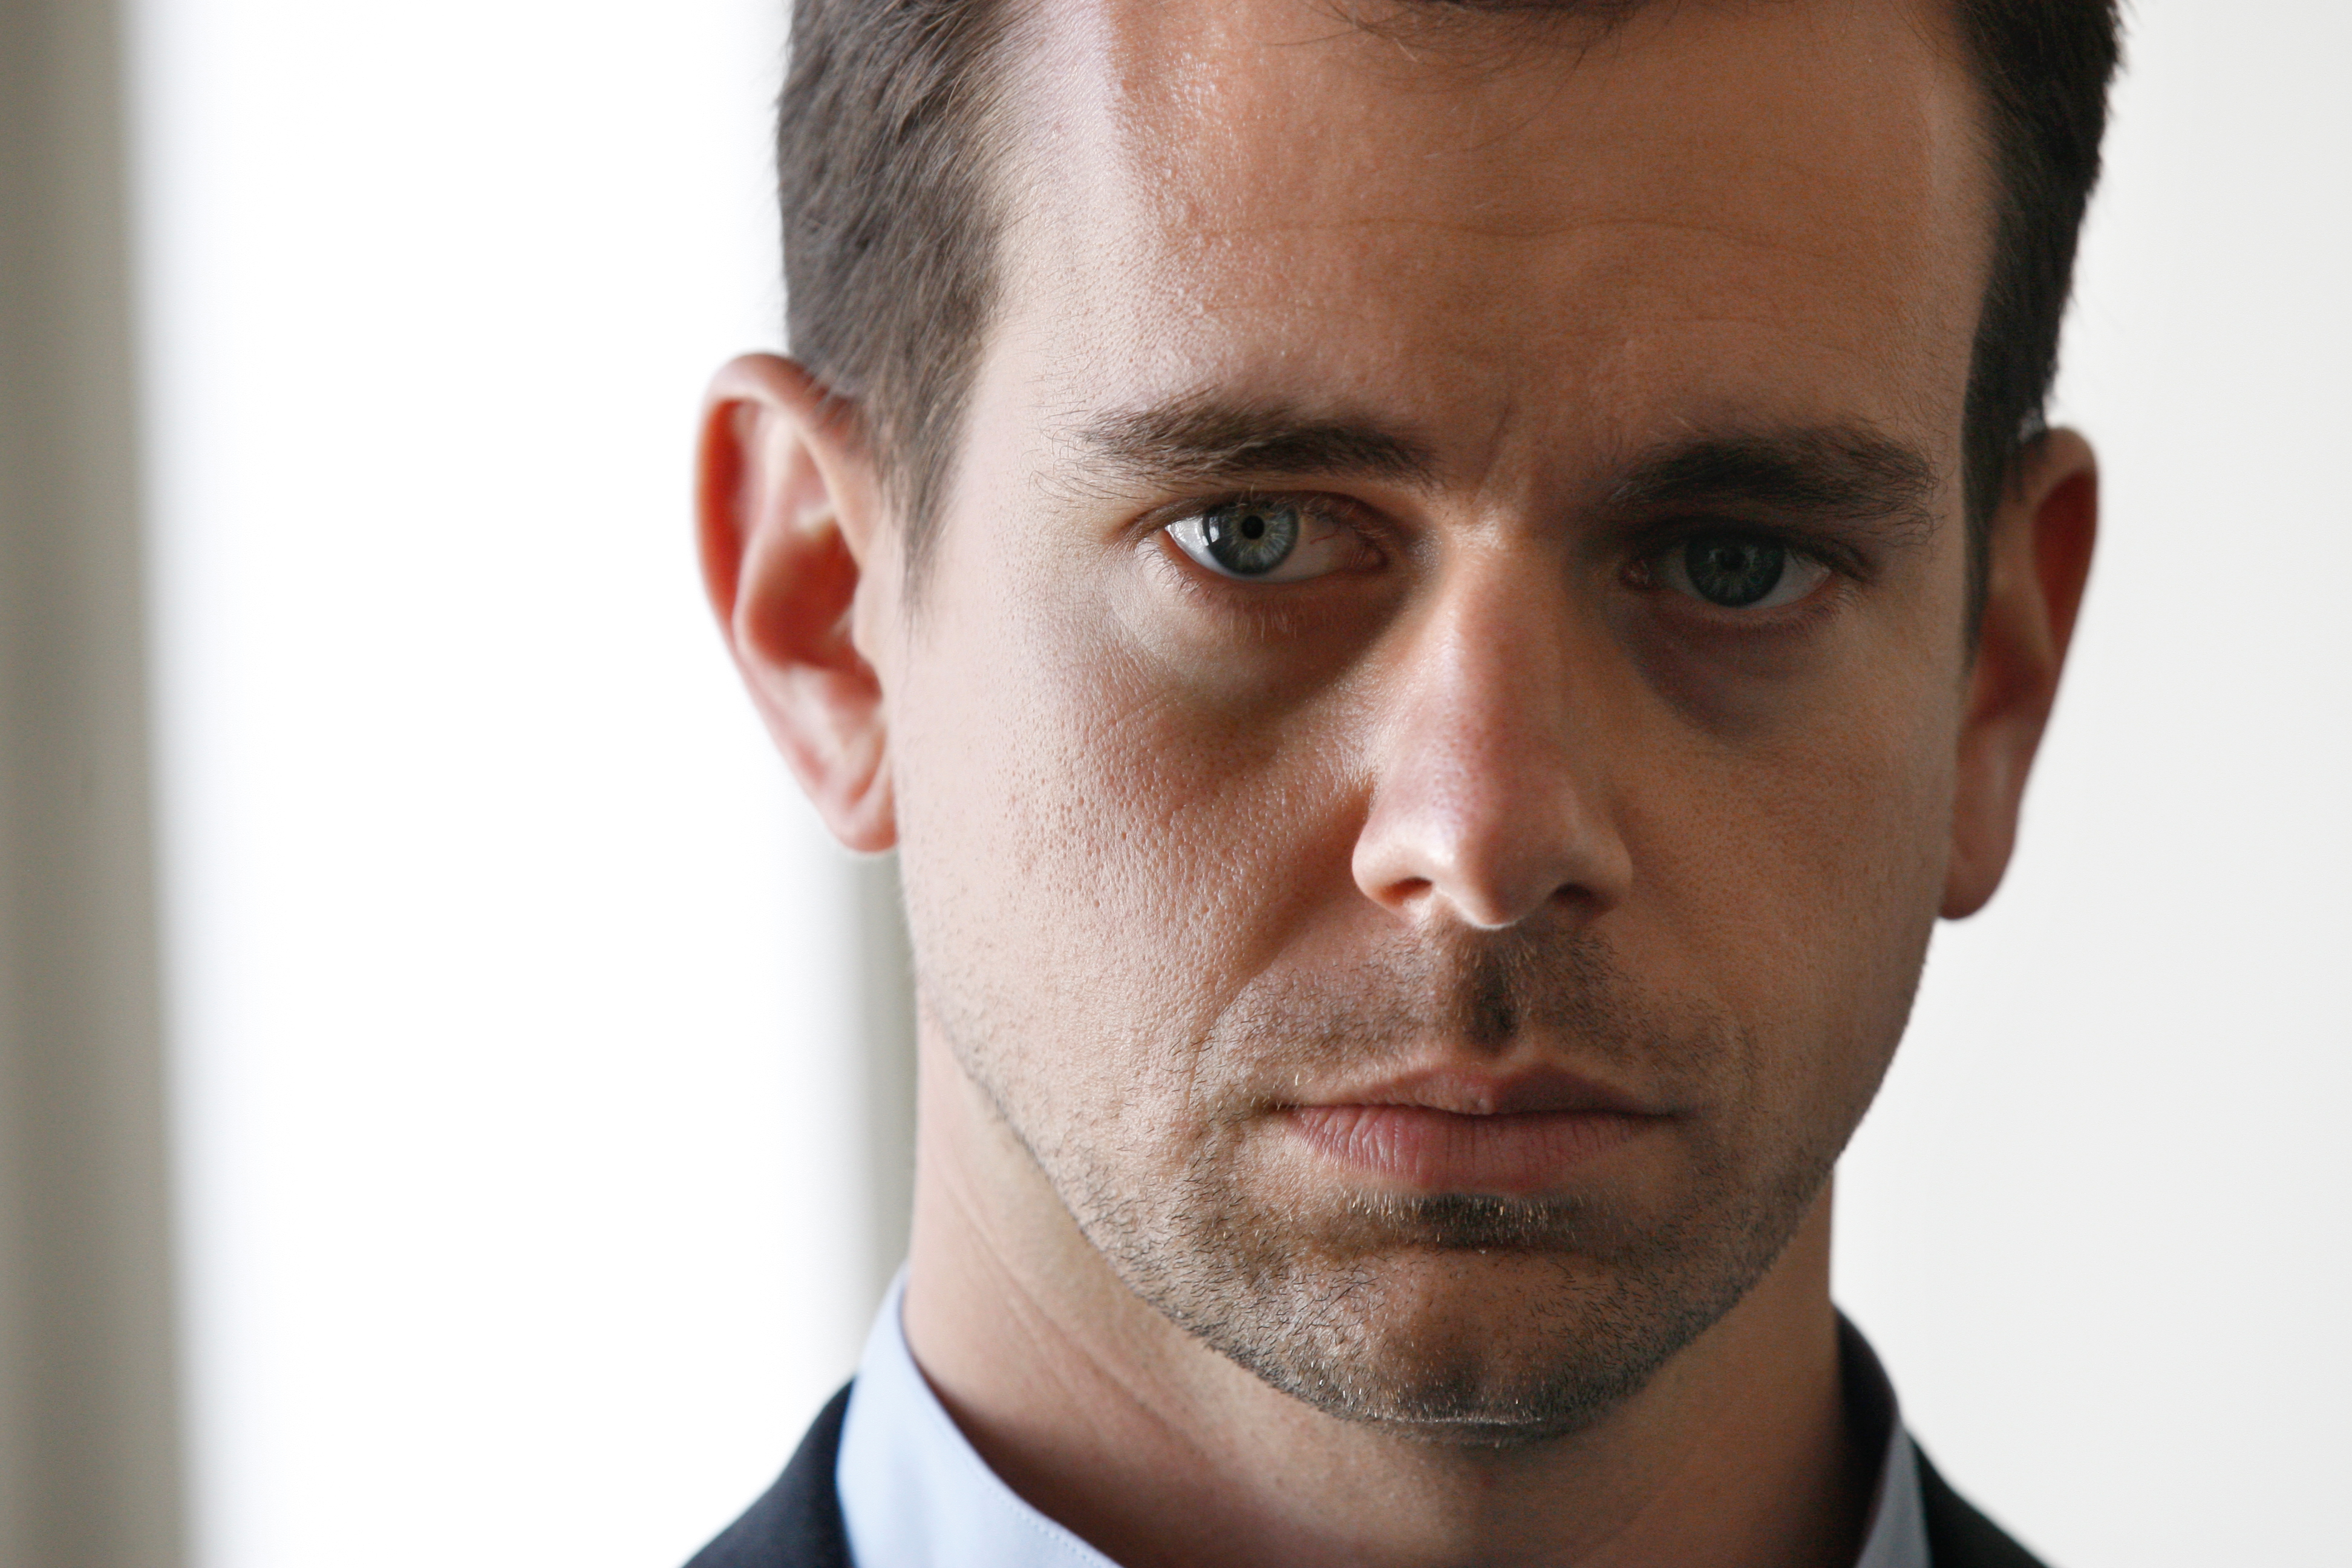 Jack Dorsey, co-founder, Twitter, and founder and CEO, Square.